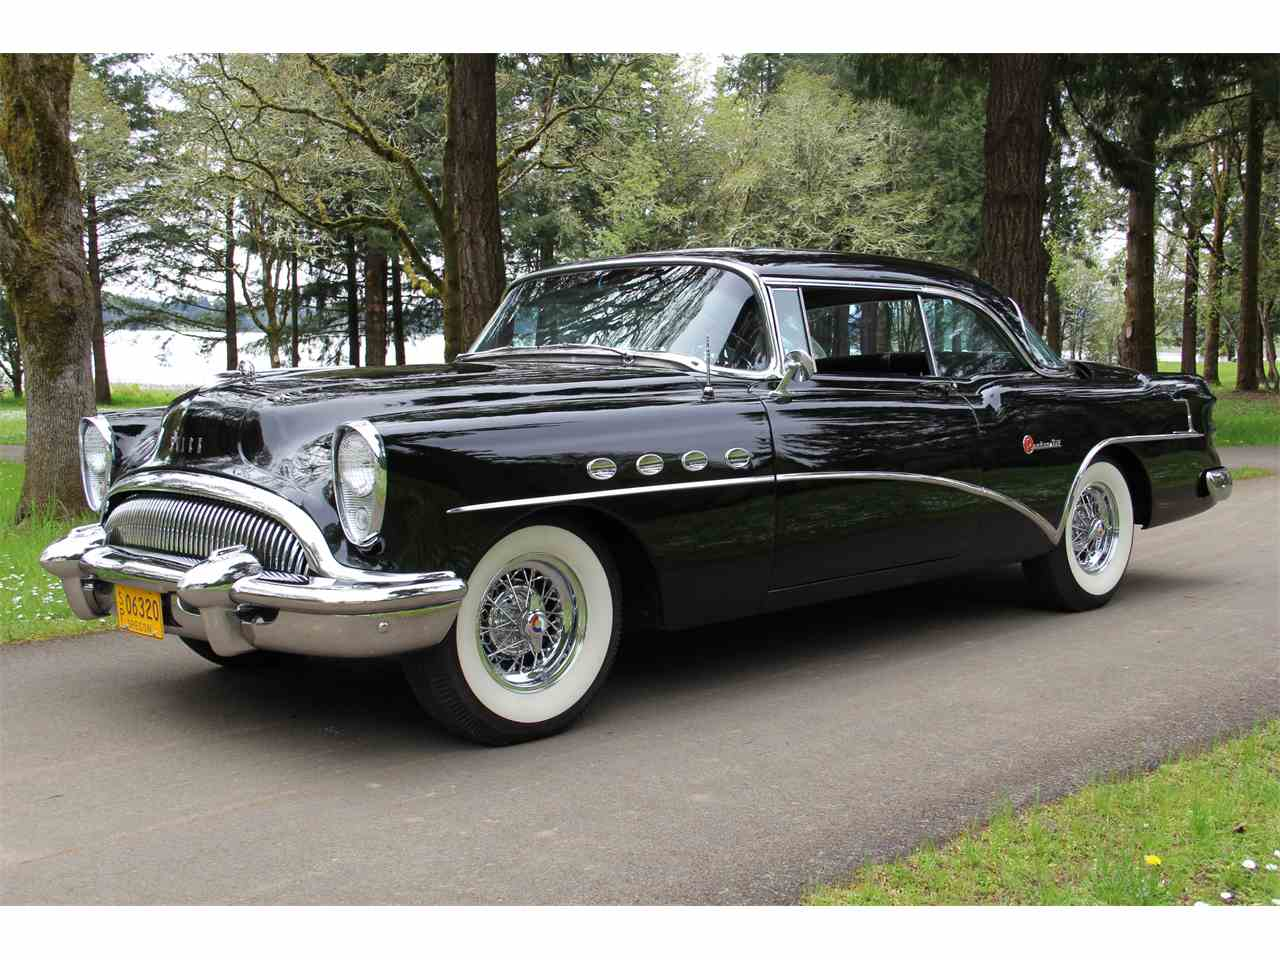 Large Picture of 1954 Roadmaster Riviera Hardtop. FACTORY A/C! Offered by Charvet Classic Cars - LA9M